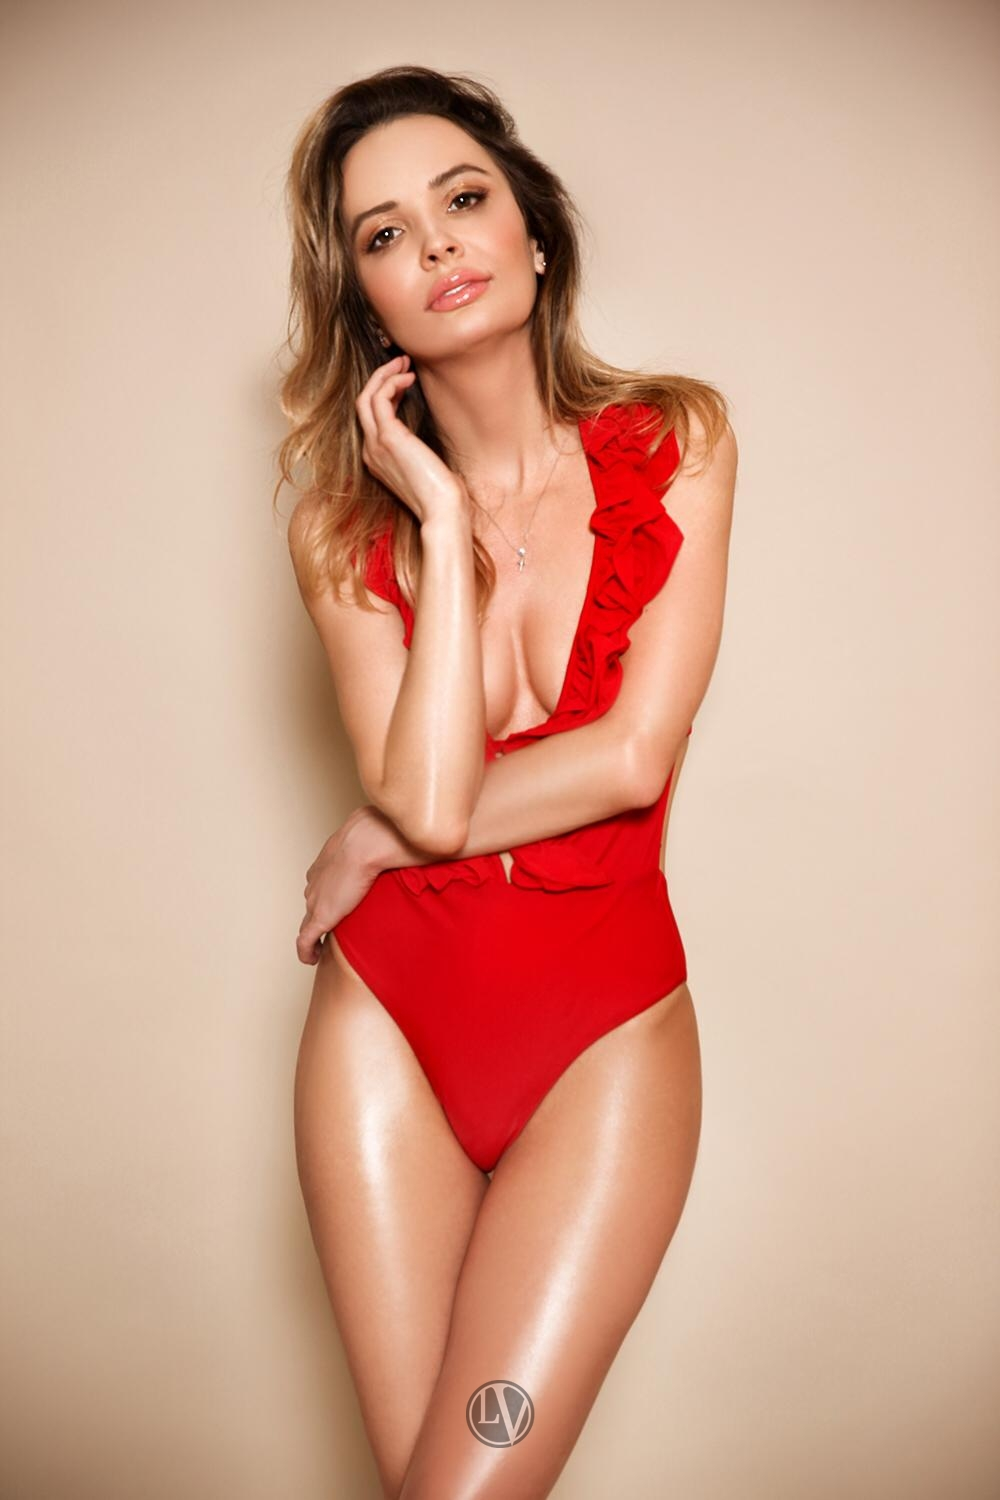 Perfectly petite escort Finley in her red swimsuit